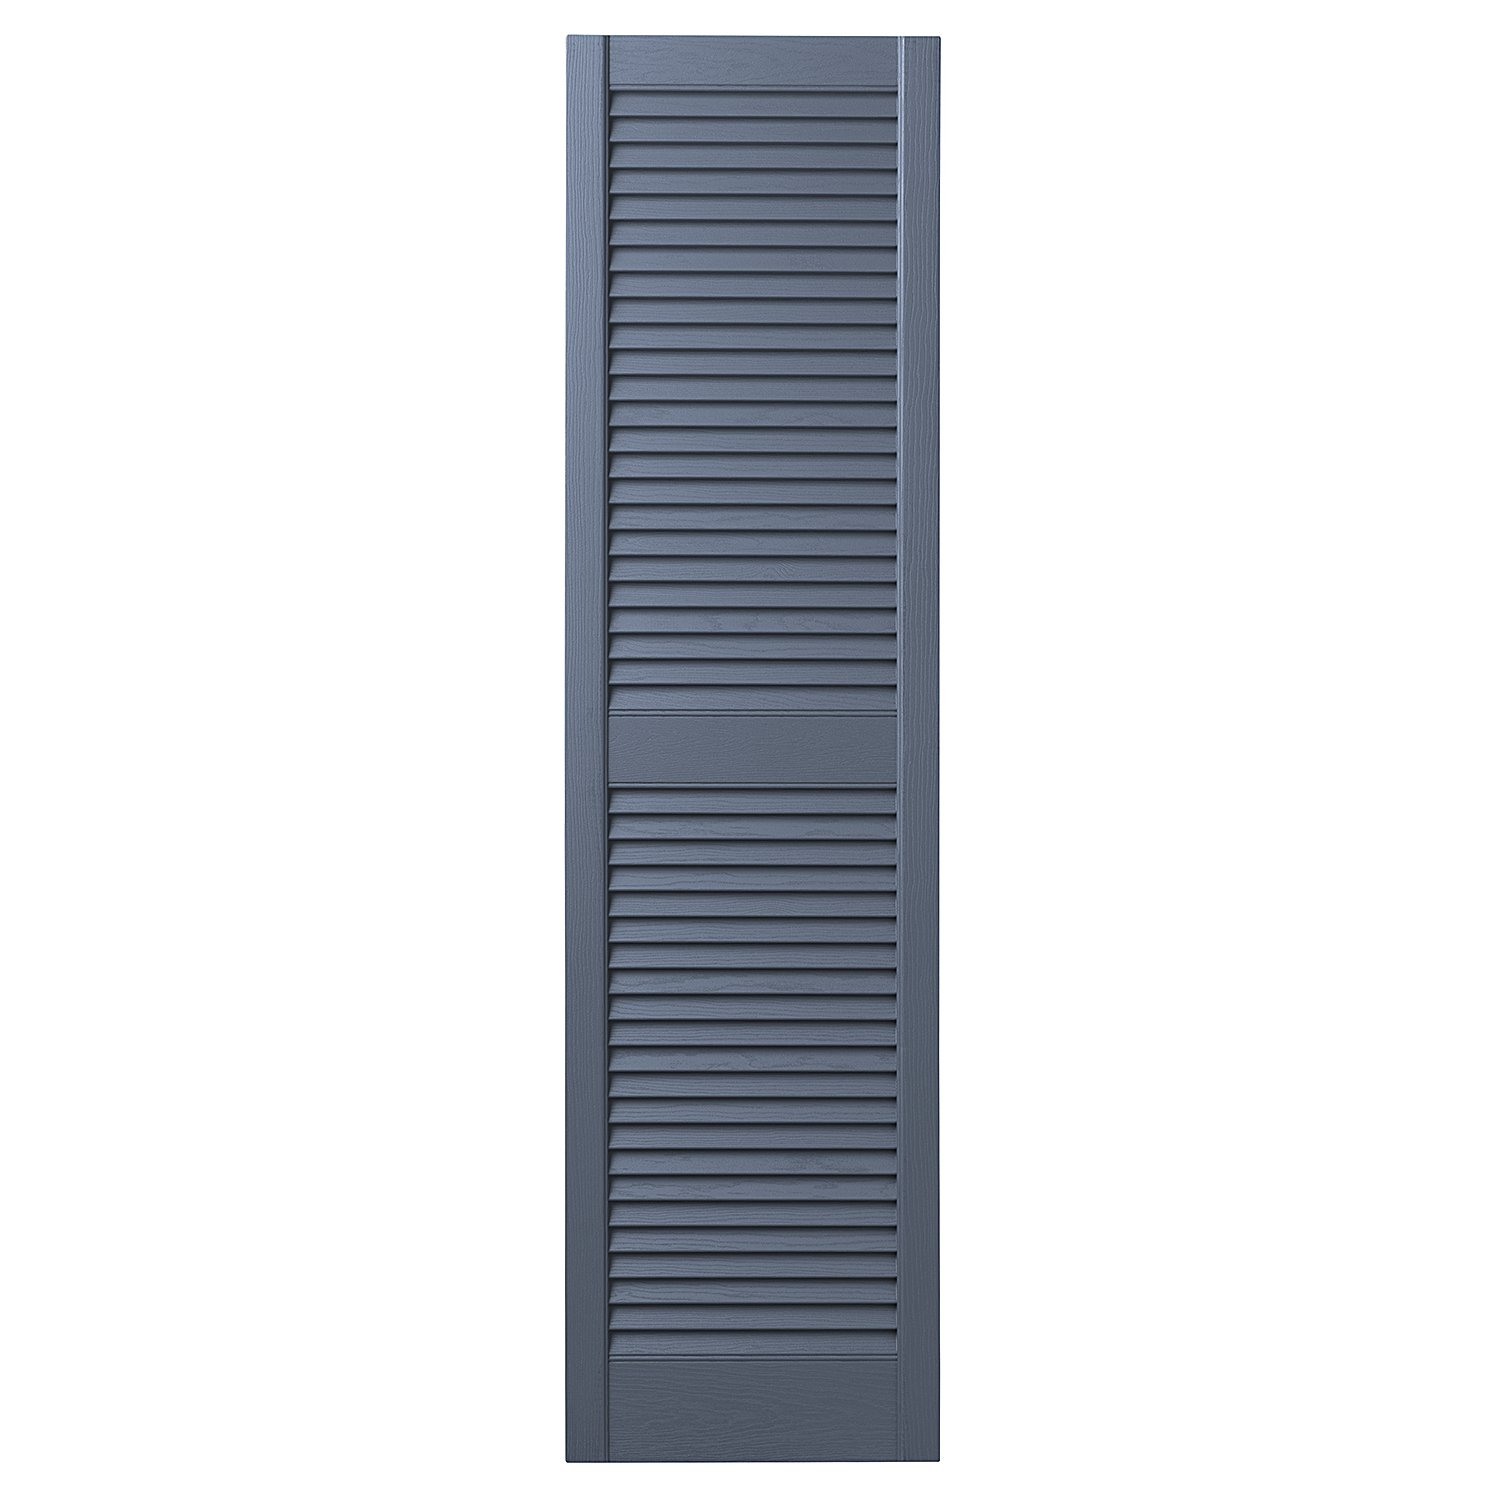 Ply Gem Shutters and Accents VINLV1567 41 Louvered Shutter, 15'', Blue